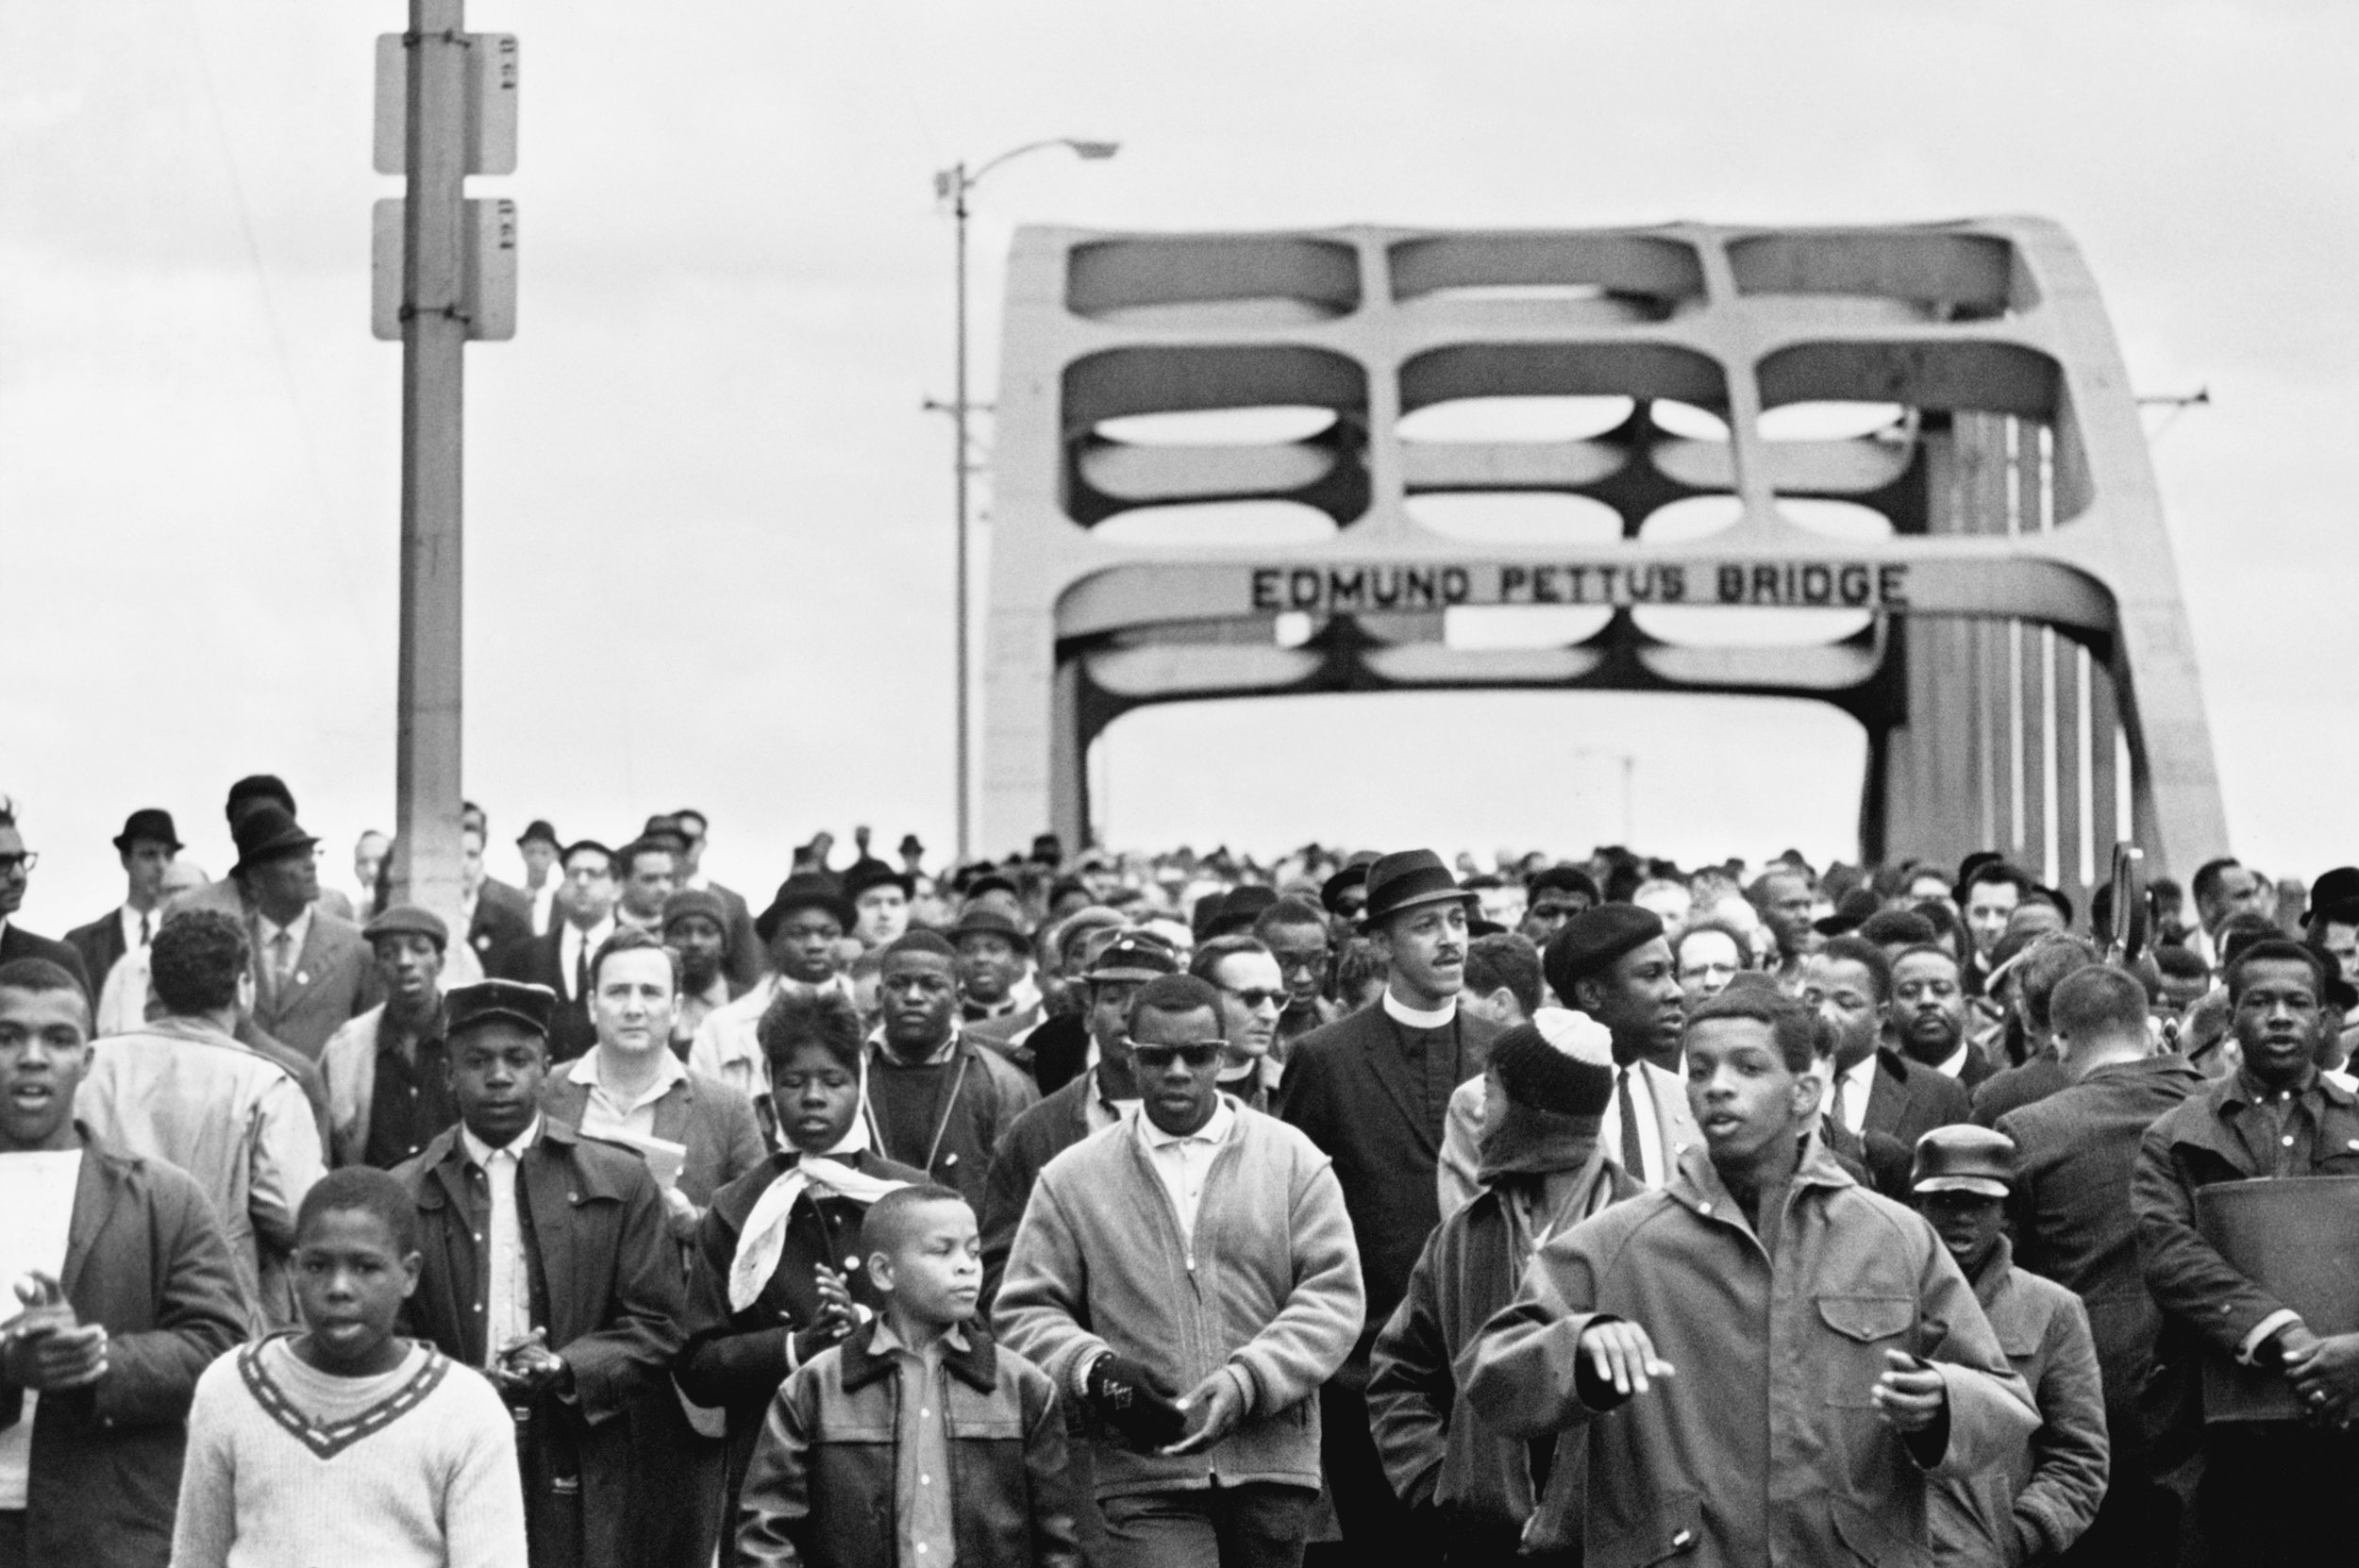 Here he is smack dab in the middle of that day's  most  iconic photo of Pettus Bridge. I am not sure he knew he had been immortalized in this photo; it would not have occurred to him to look for himself. (Flip Schulke / Corbis)